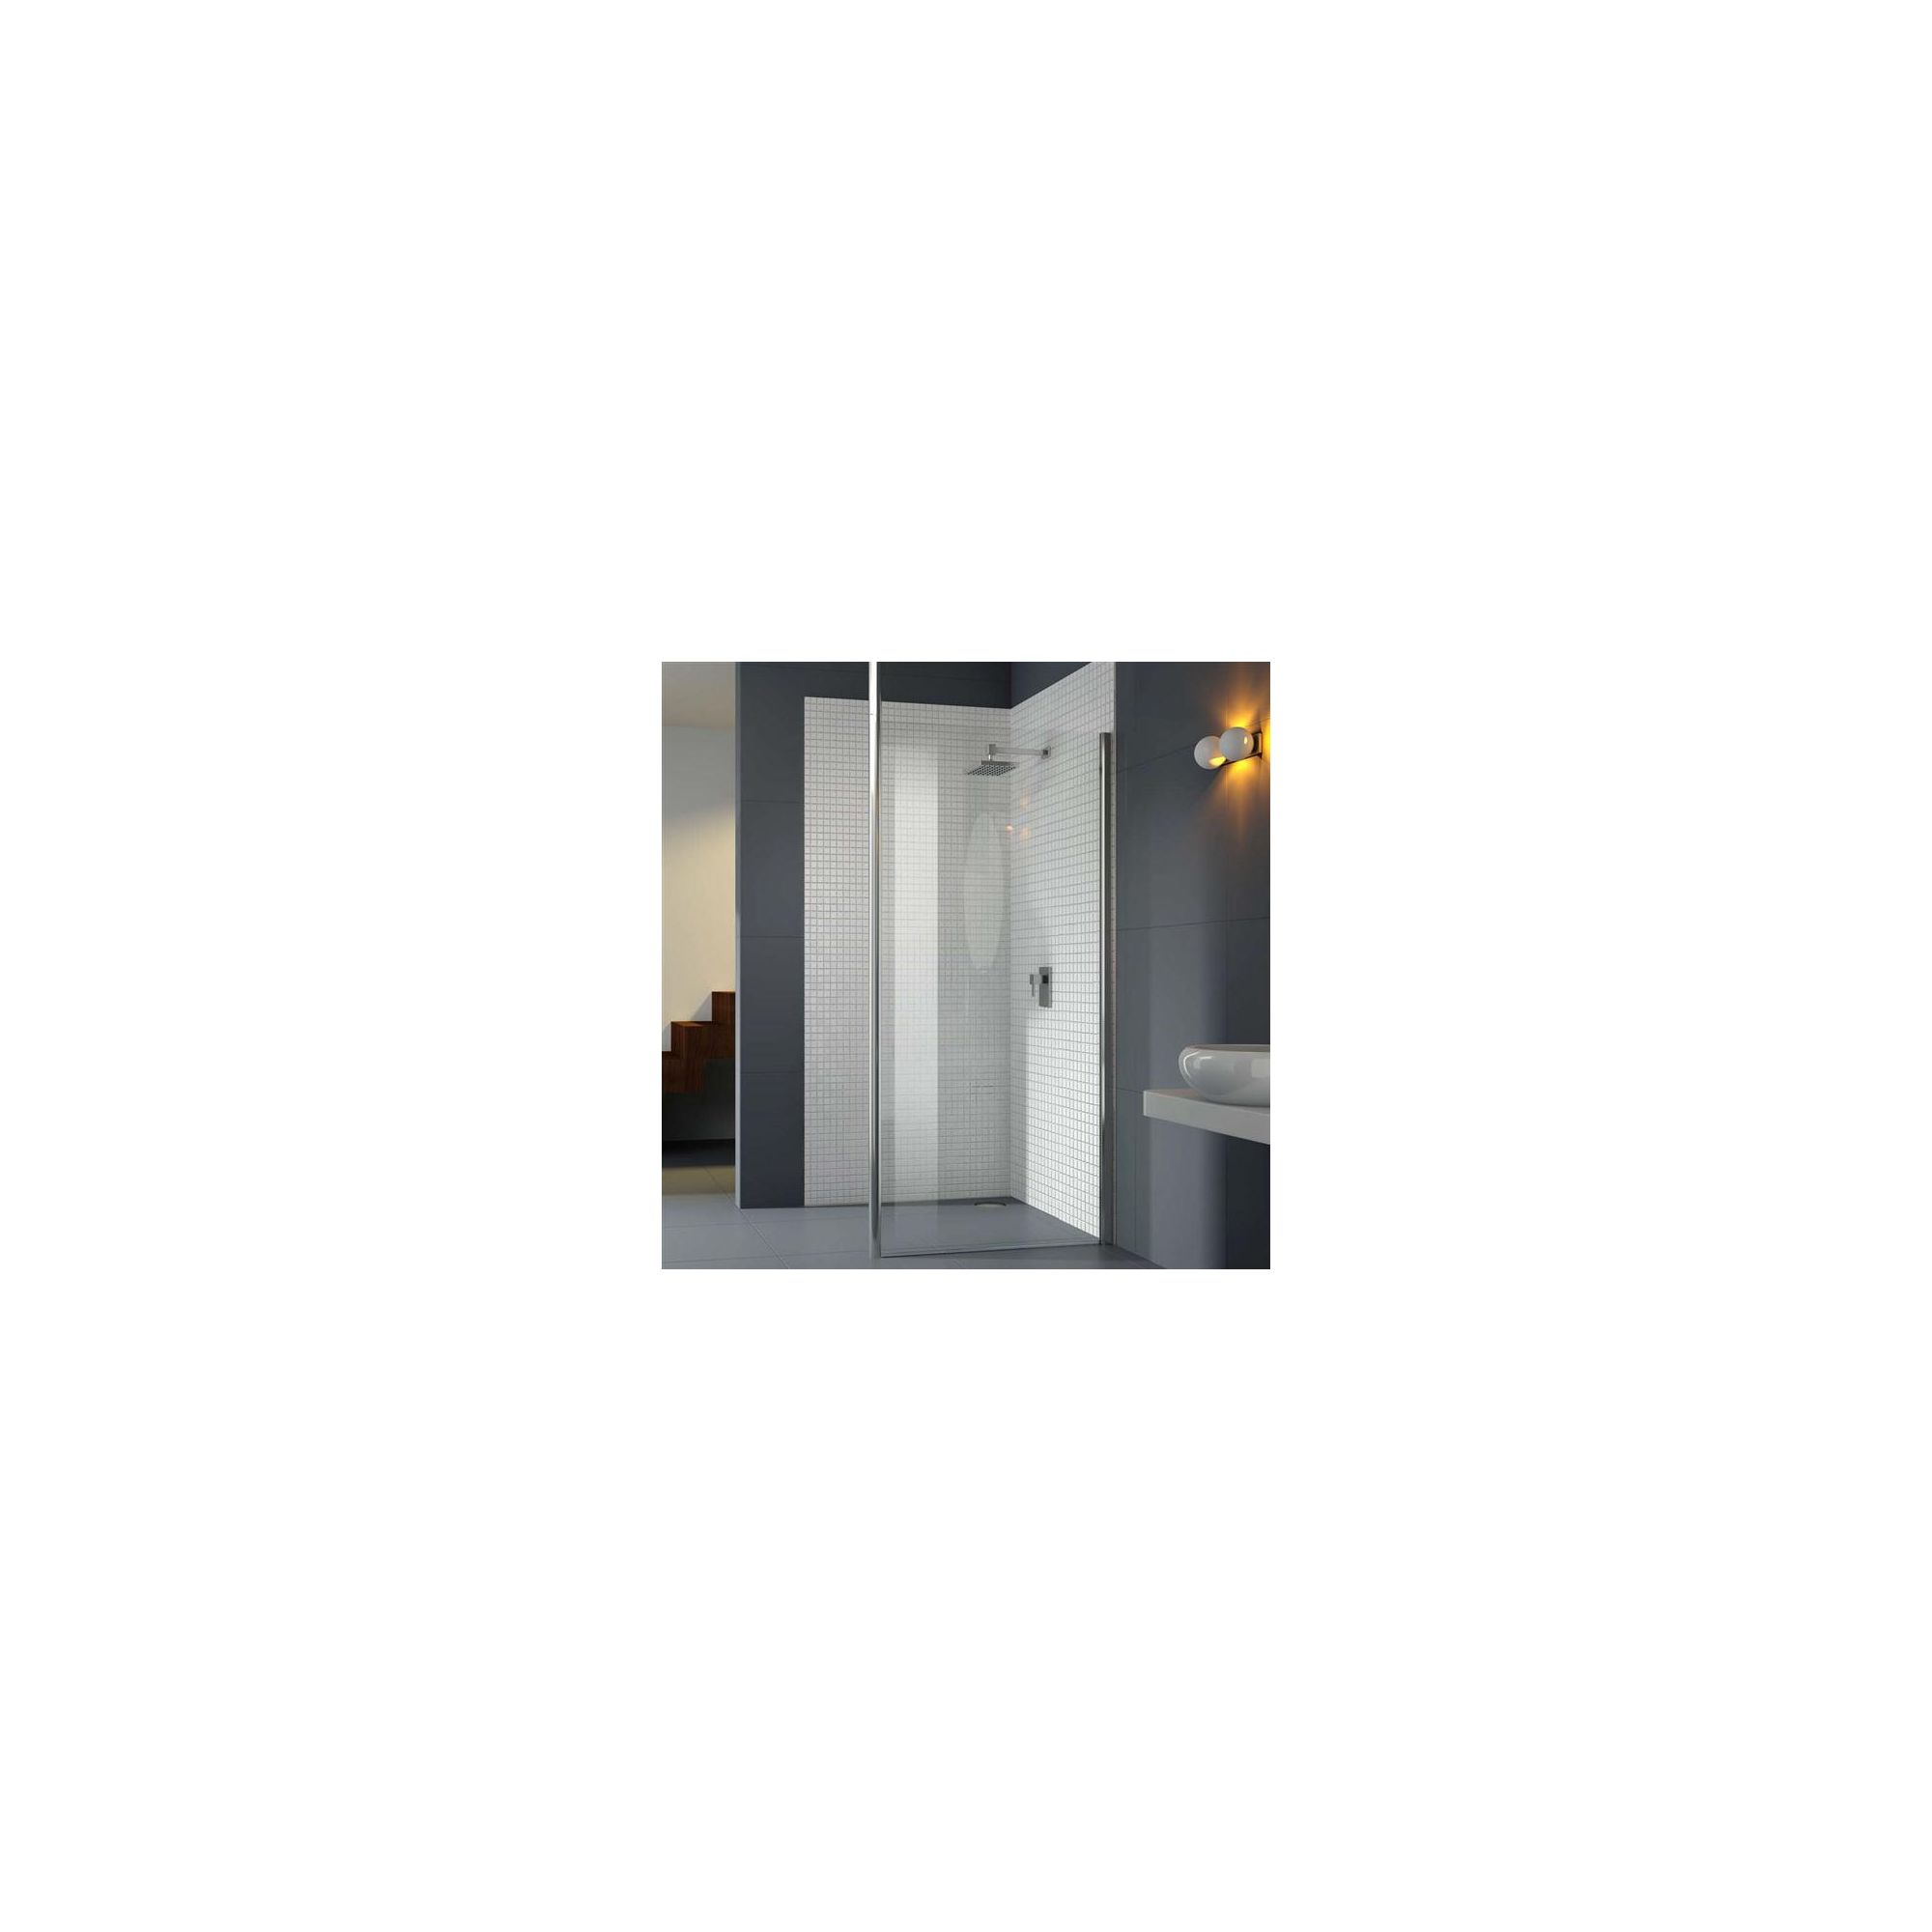 Merlyn Vivid Six Wet Room Shower Enclosure, 1000mm x 800mm, Vertical Support Bar, Low Profile Tray, 6mm Glass at Tesco Direct